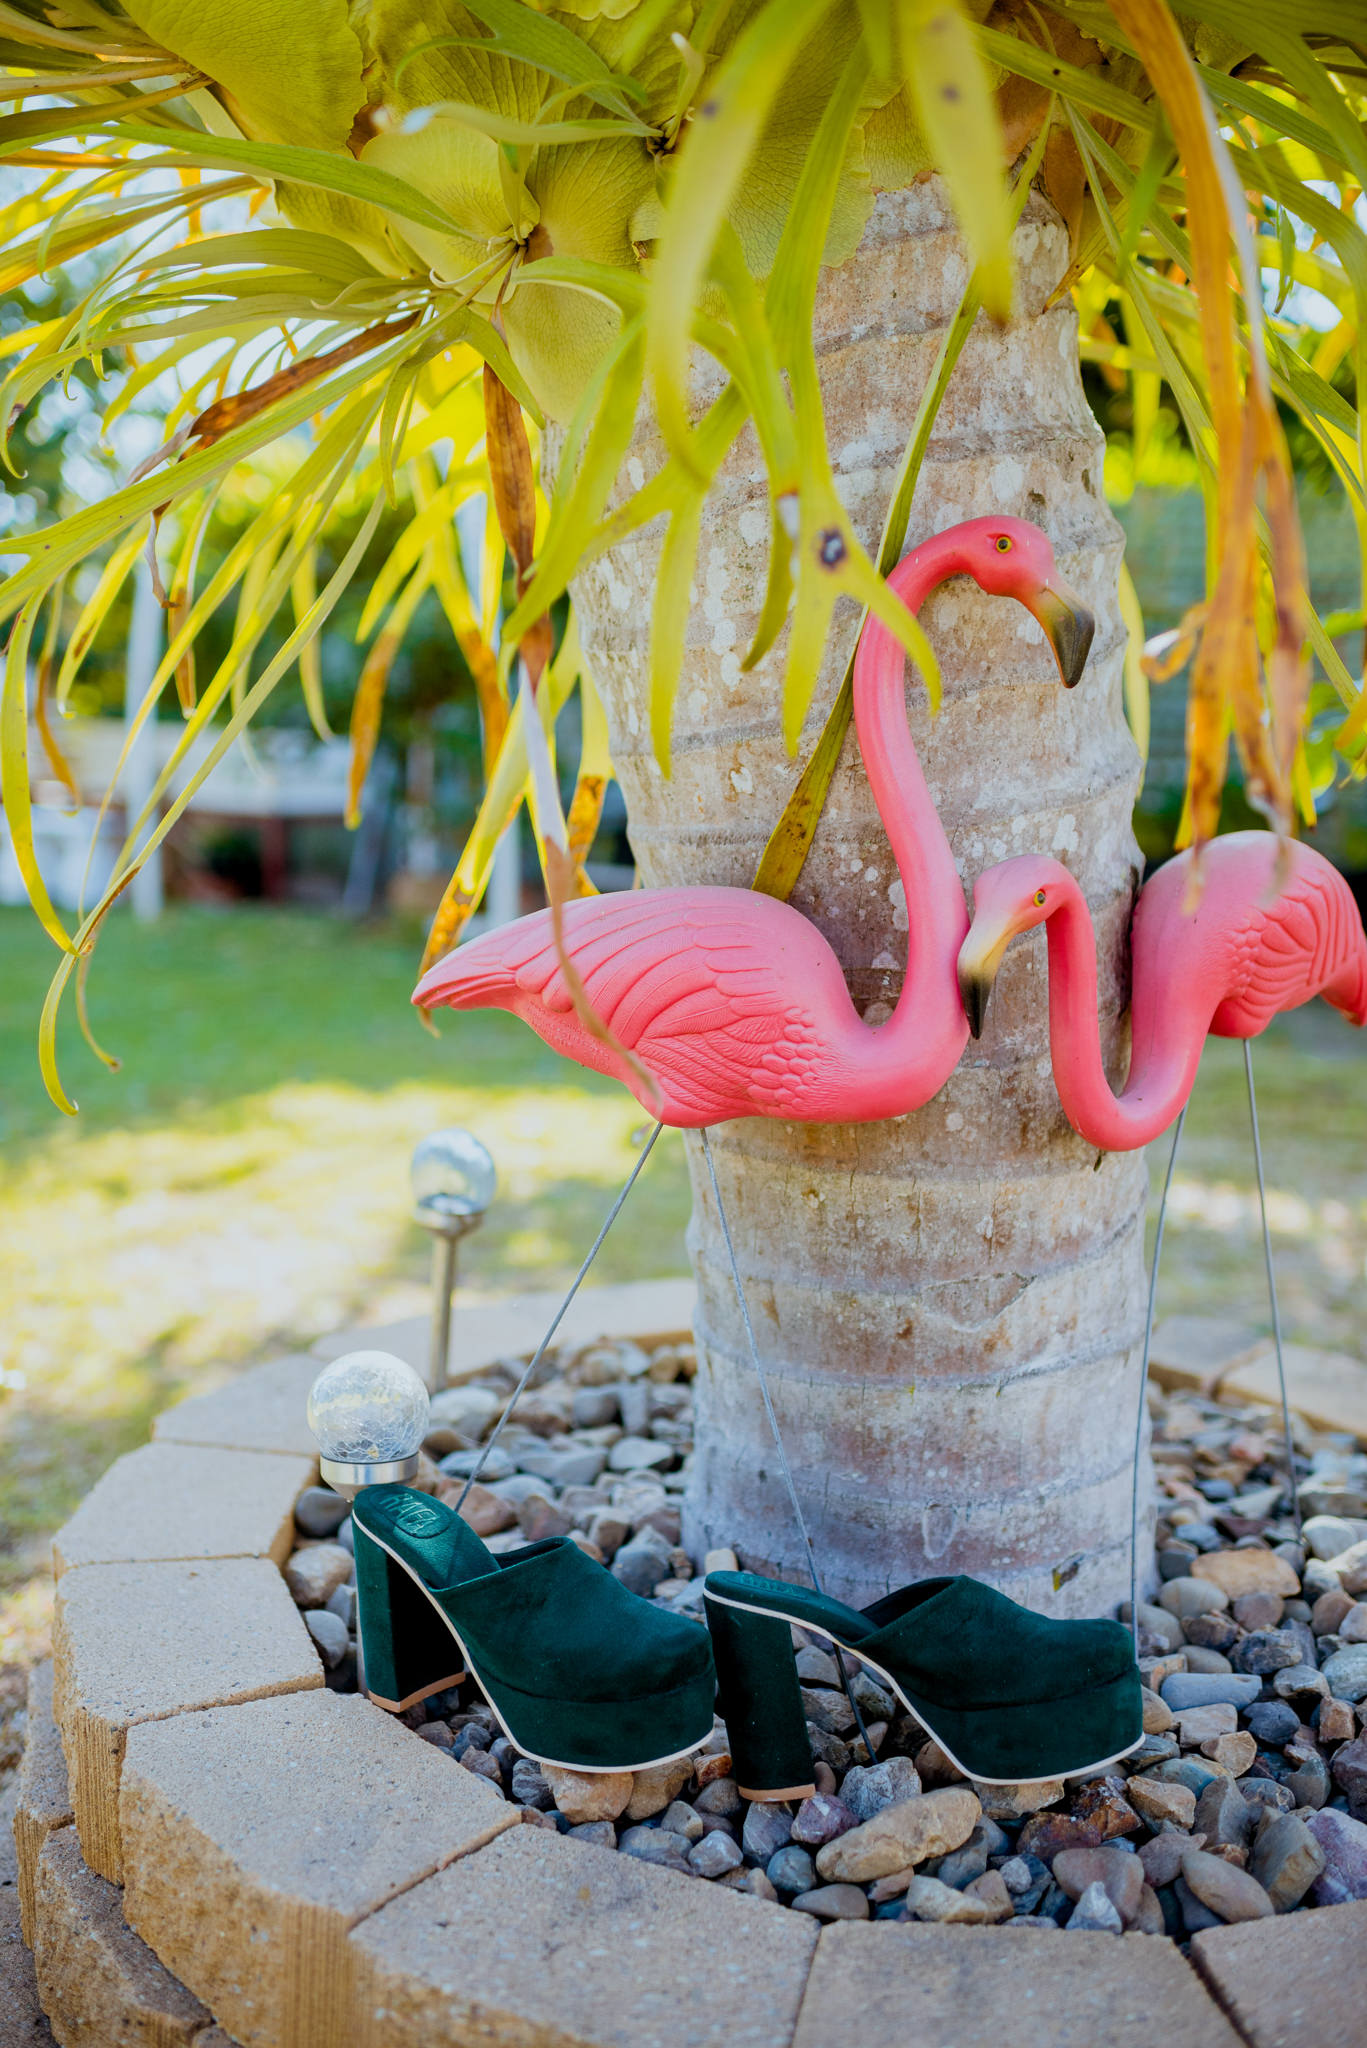 Green velvet high-heeled shoes underneath plastic flamingos under a palm tree